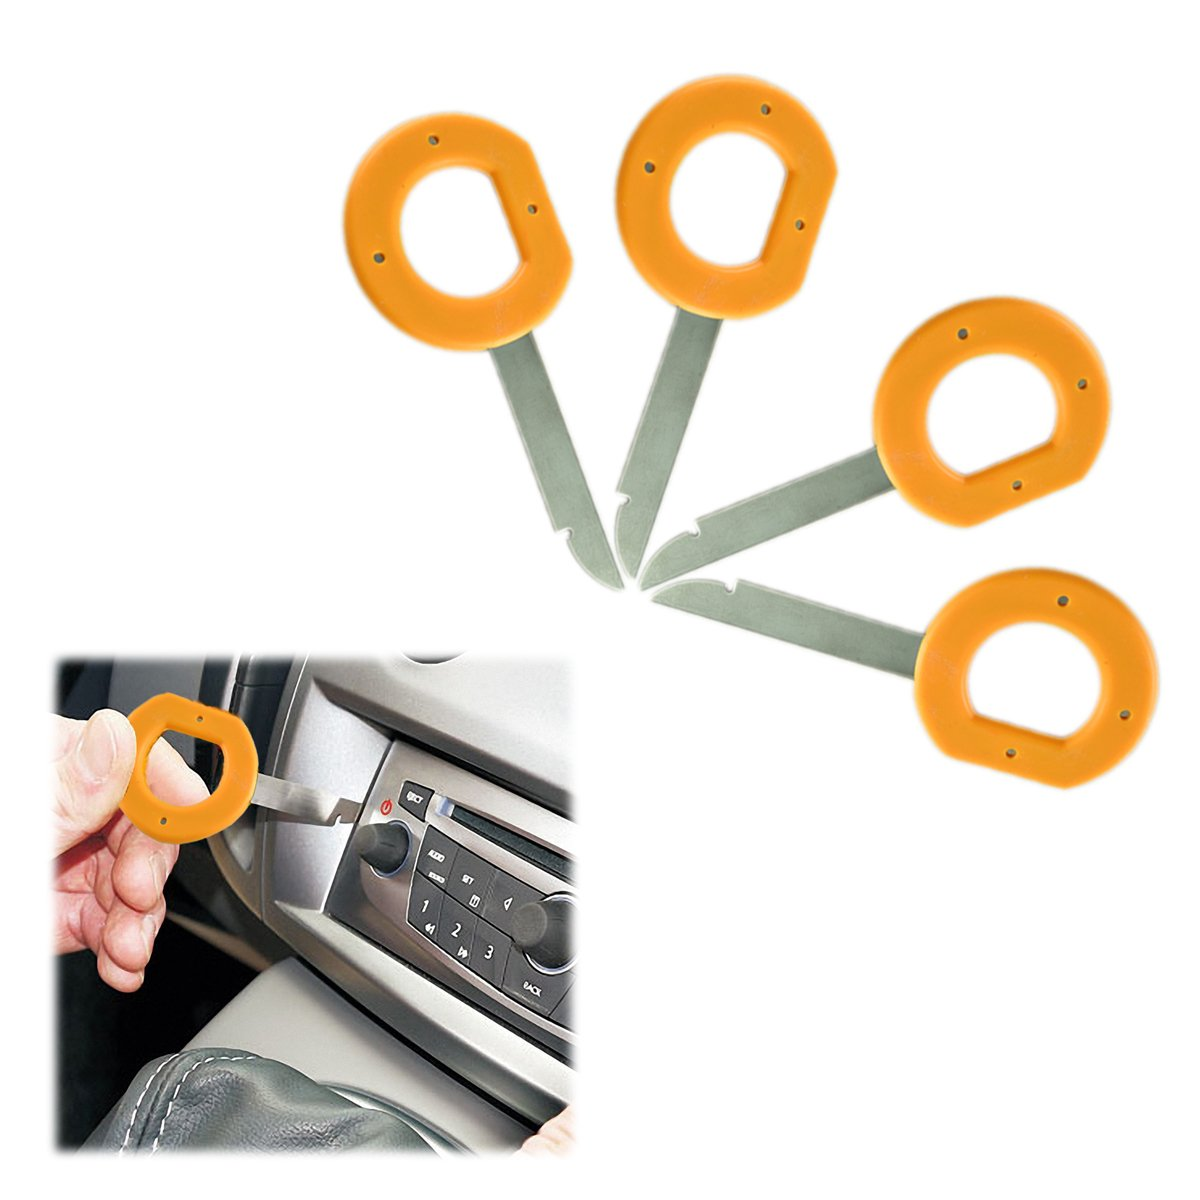 Ansblue Car Radio Removal Key Toolmass Audi Audio Scosche Wiring Harness Vw Disassembly Tool Cd Dvd Host 4pcs Yellow Silver